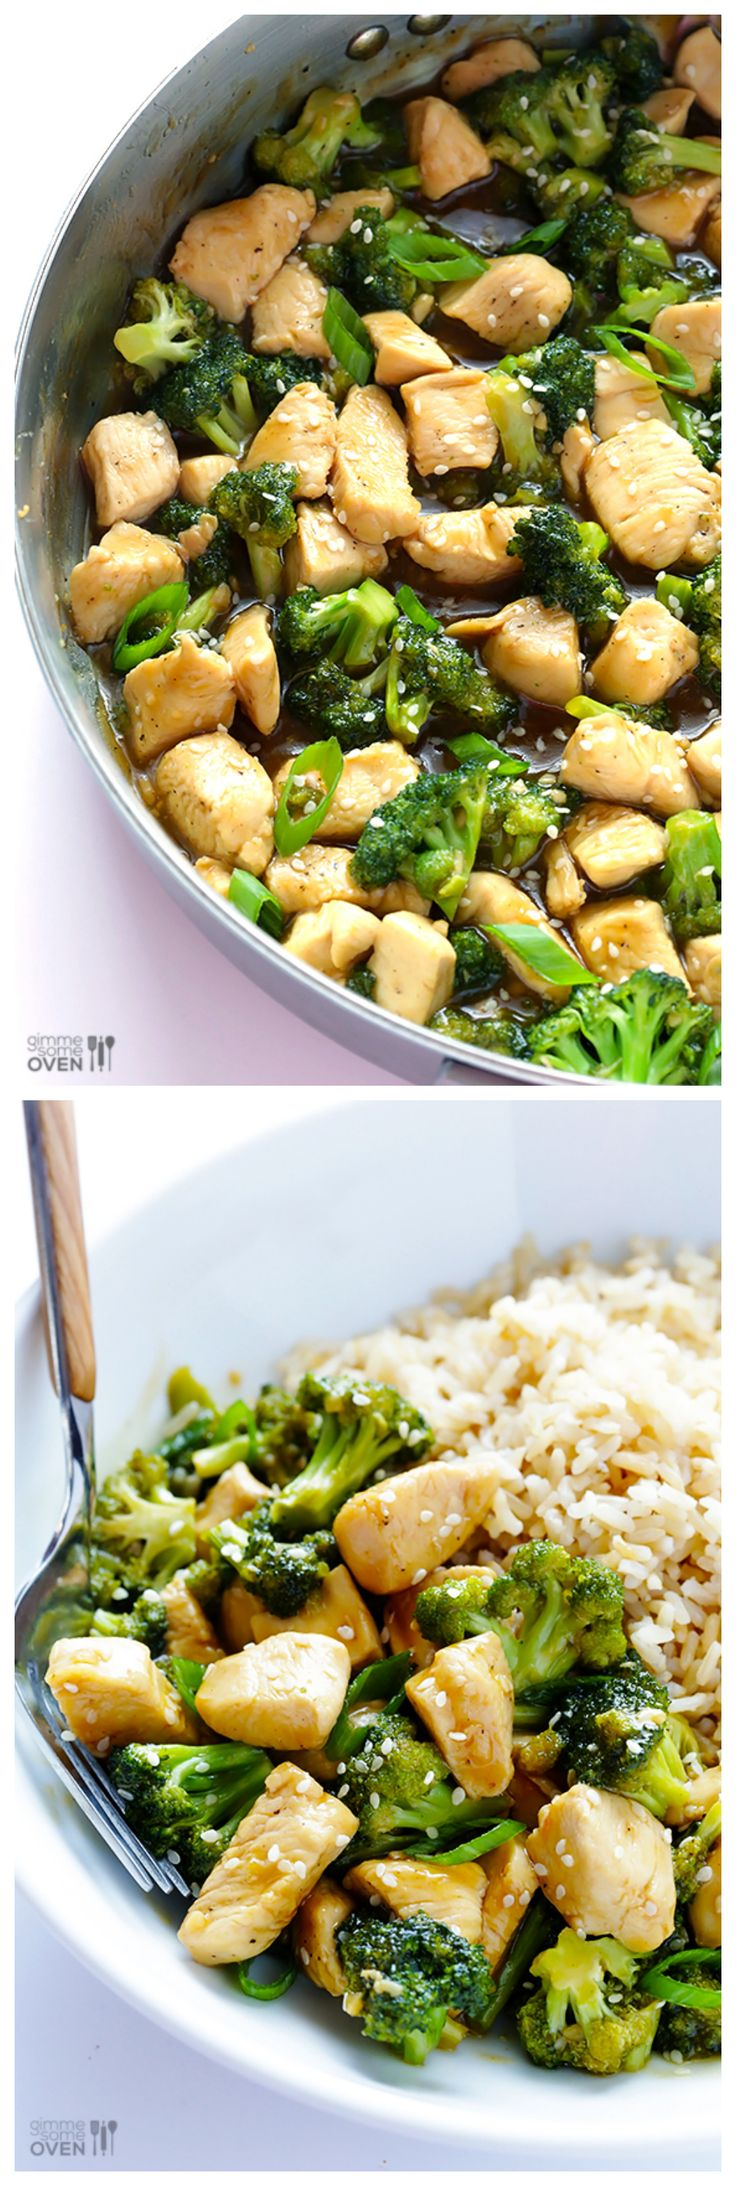 12-Minute Chicken Broccoli